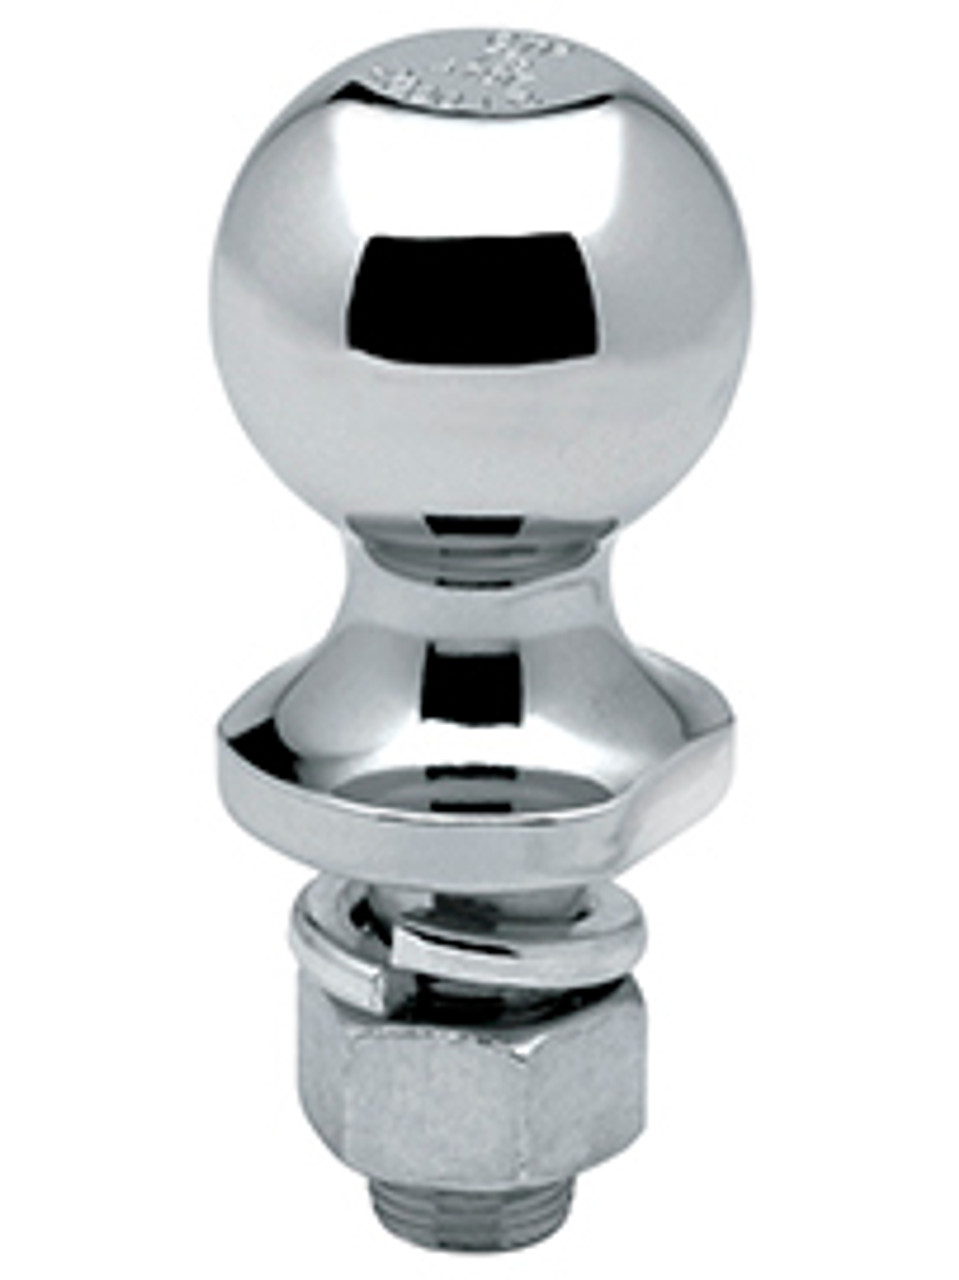 "LCA178 --- 1-7/8"" Hitch Ball with long shank, 2,000 lb Capacity, Chrome Finish"